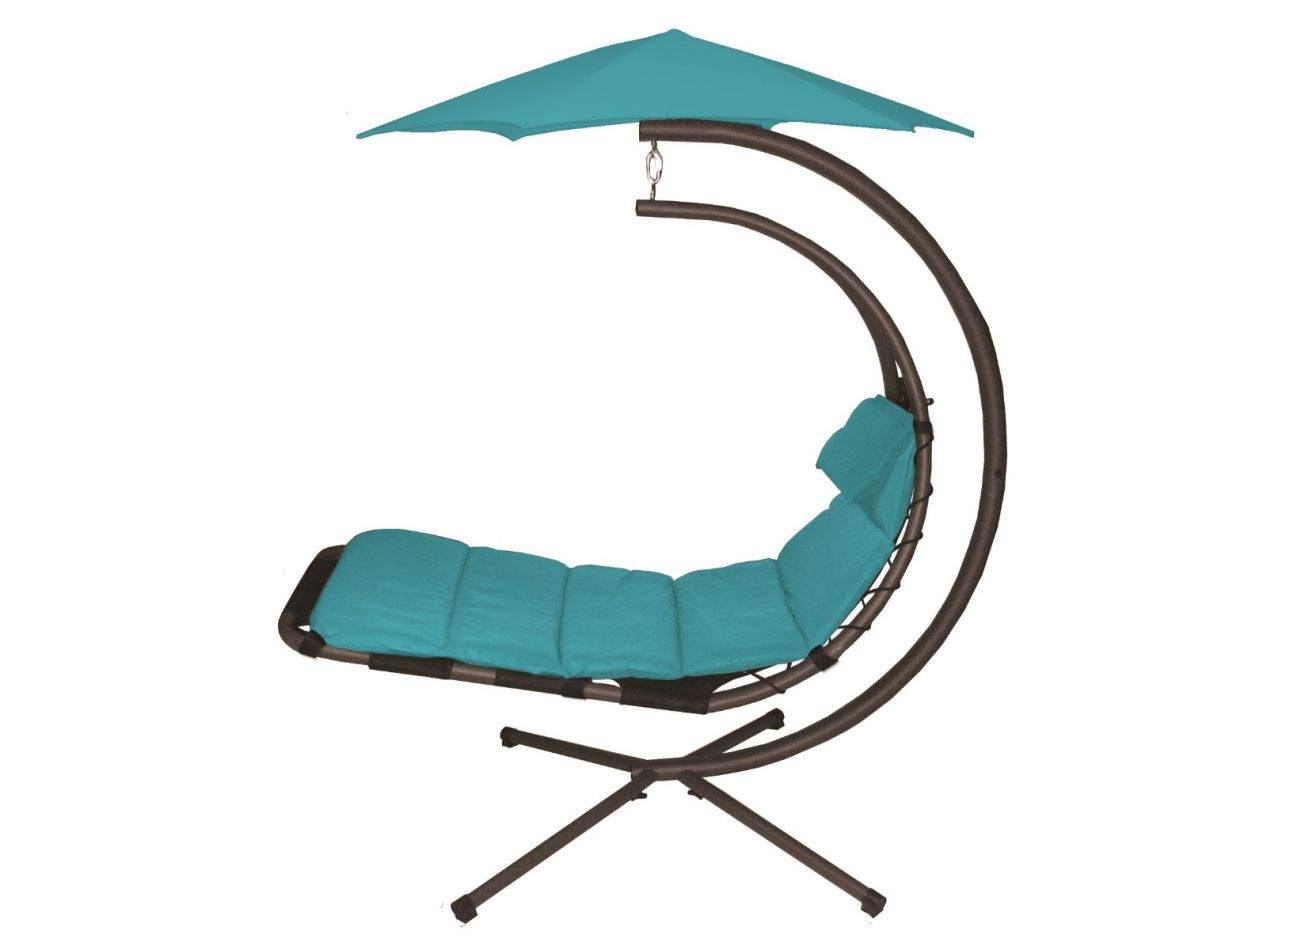 Original Dream Chair Turquoise